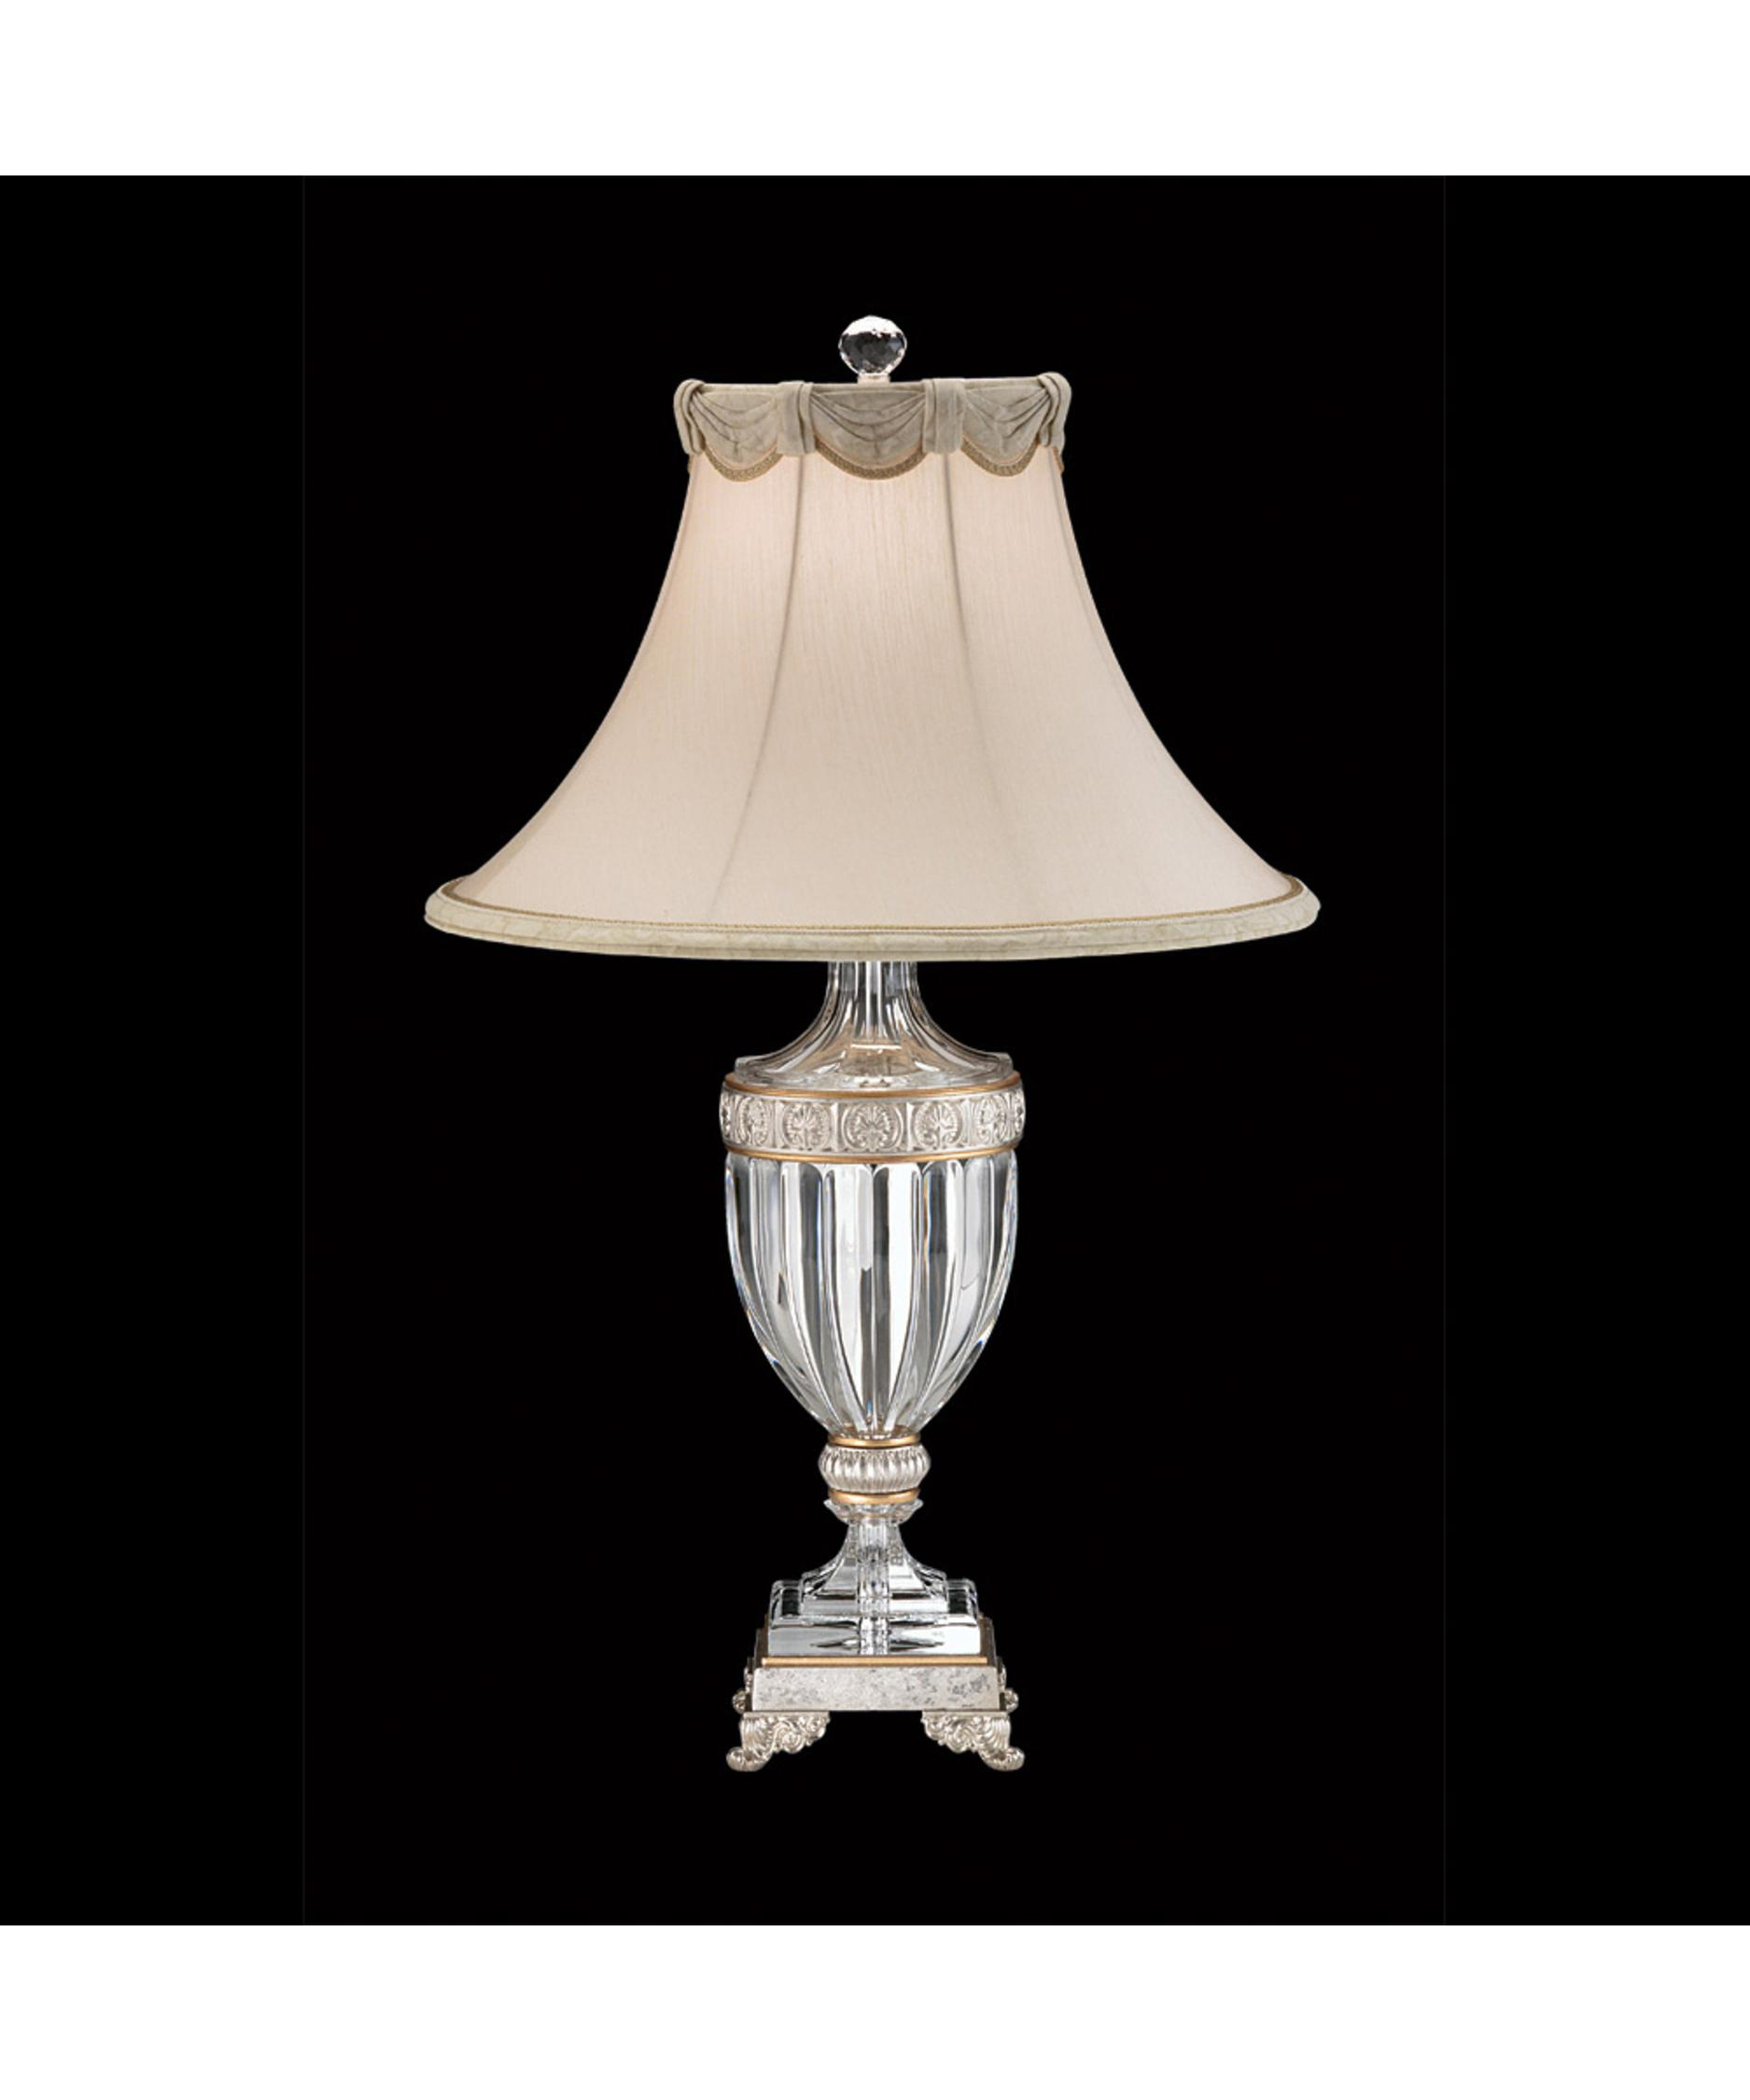 shown in antique silver finish and bell shade scalloped shade - Schonbek Lighting